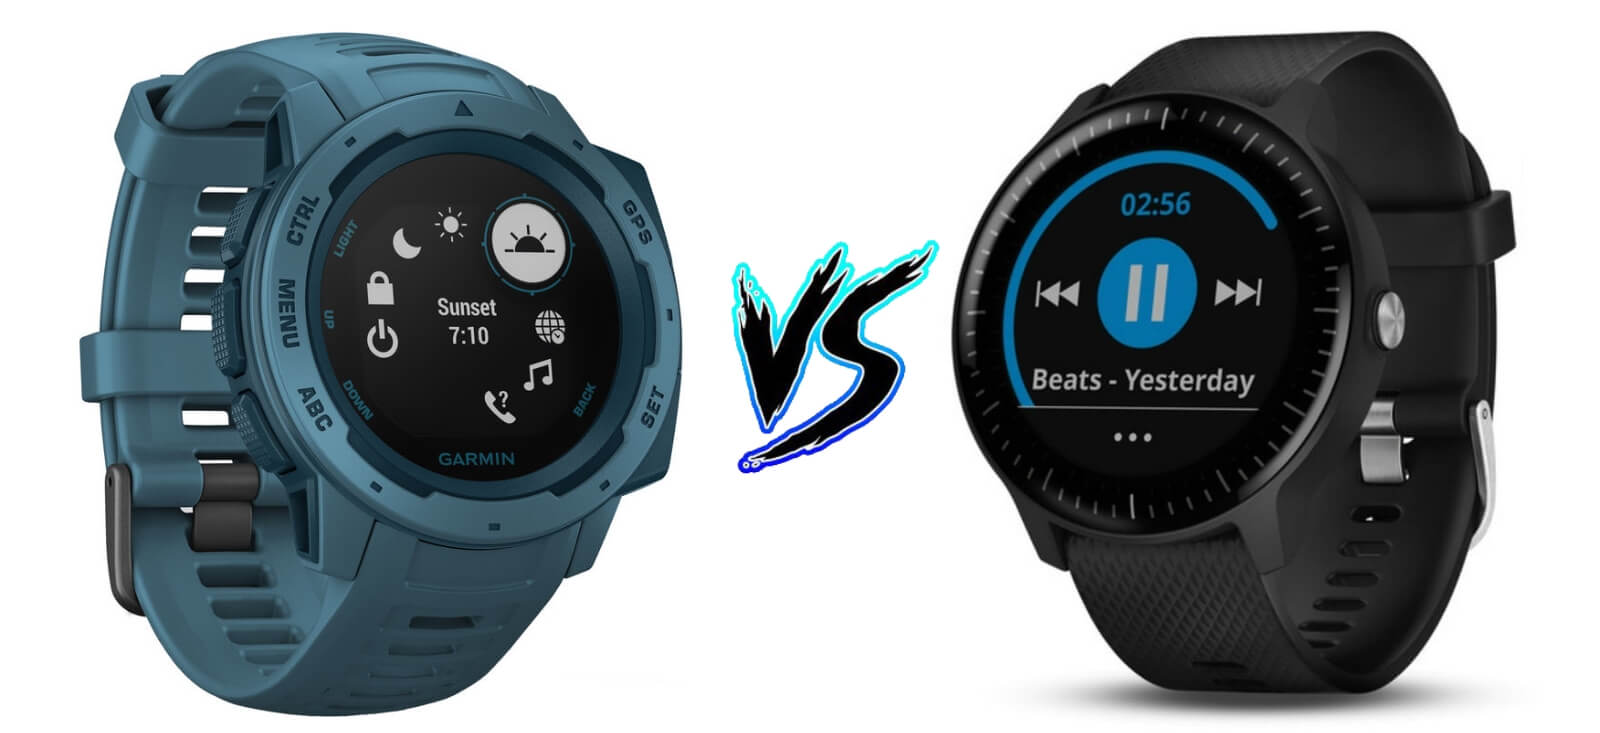 Garmin Instinct VS Vivoactive 3 Music – Product Comparison